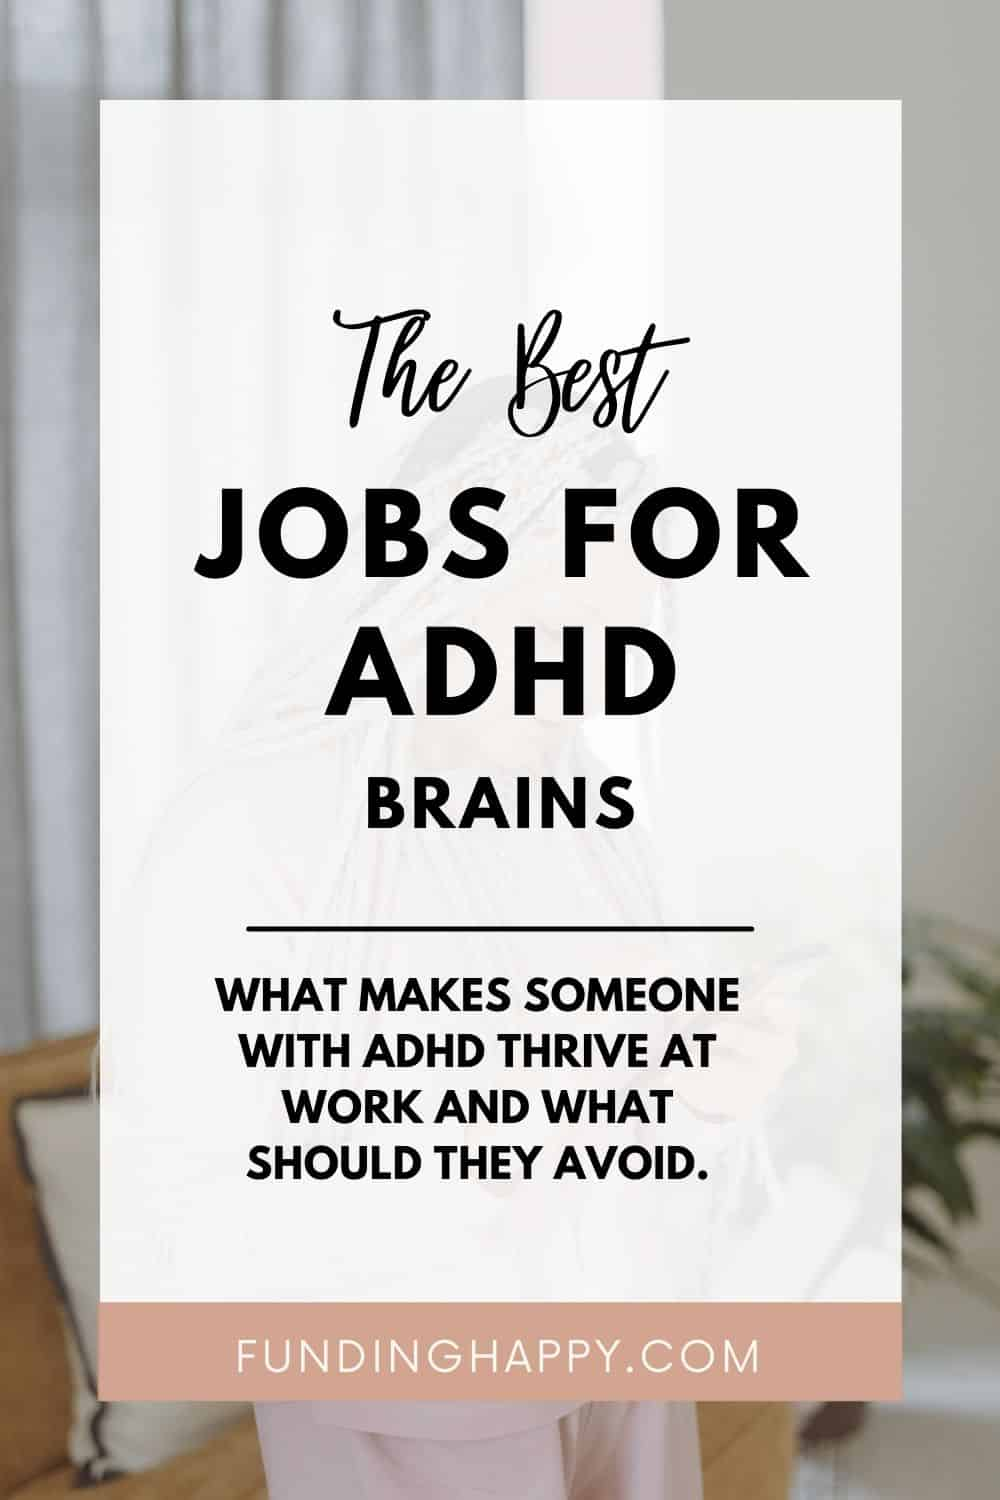 Jobs for ADHD people